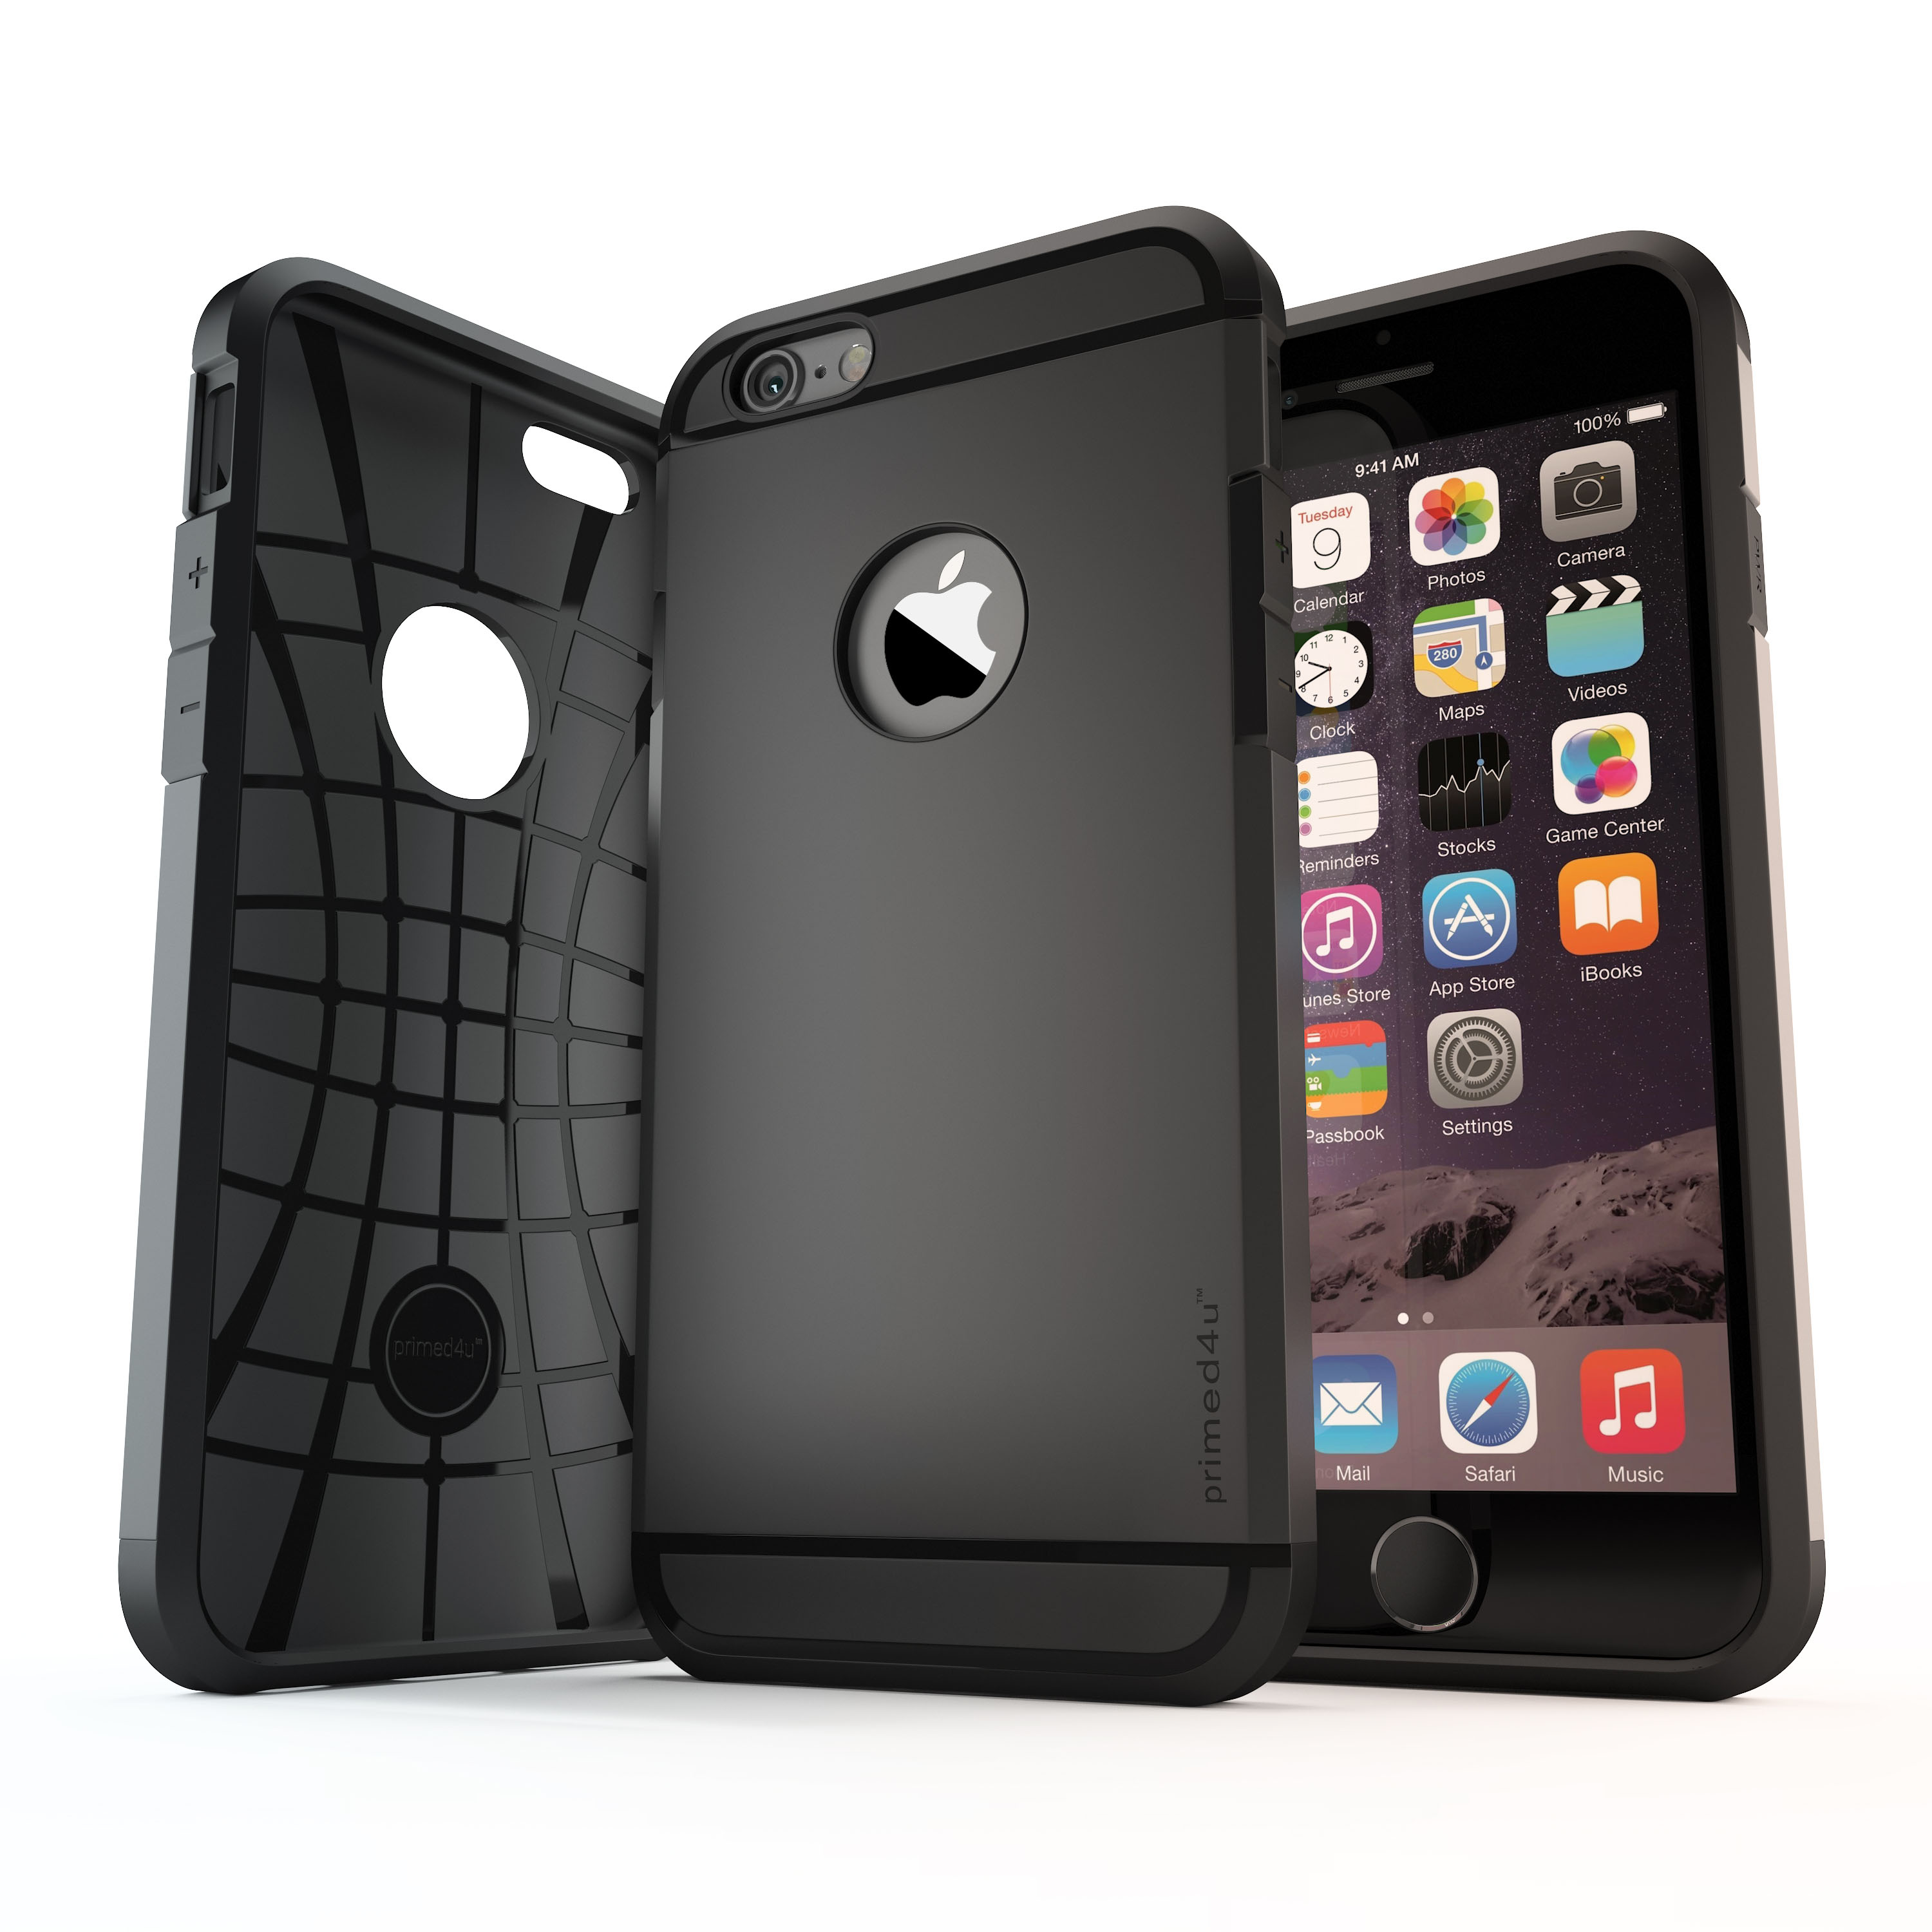 Black phone case 3D rendering with iPhone on white background